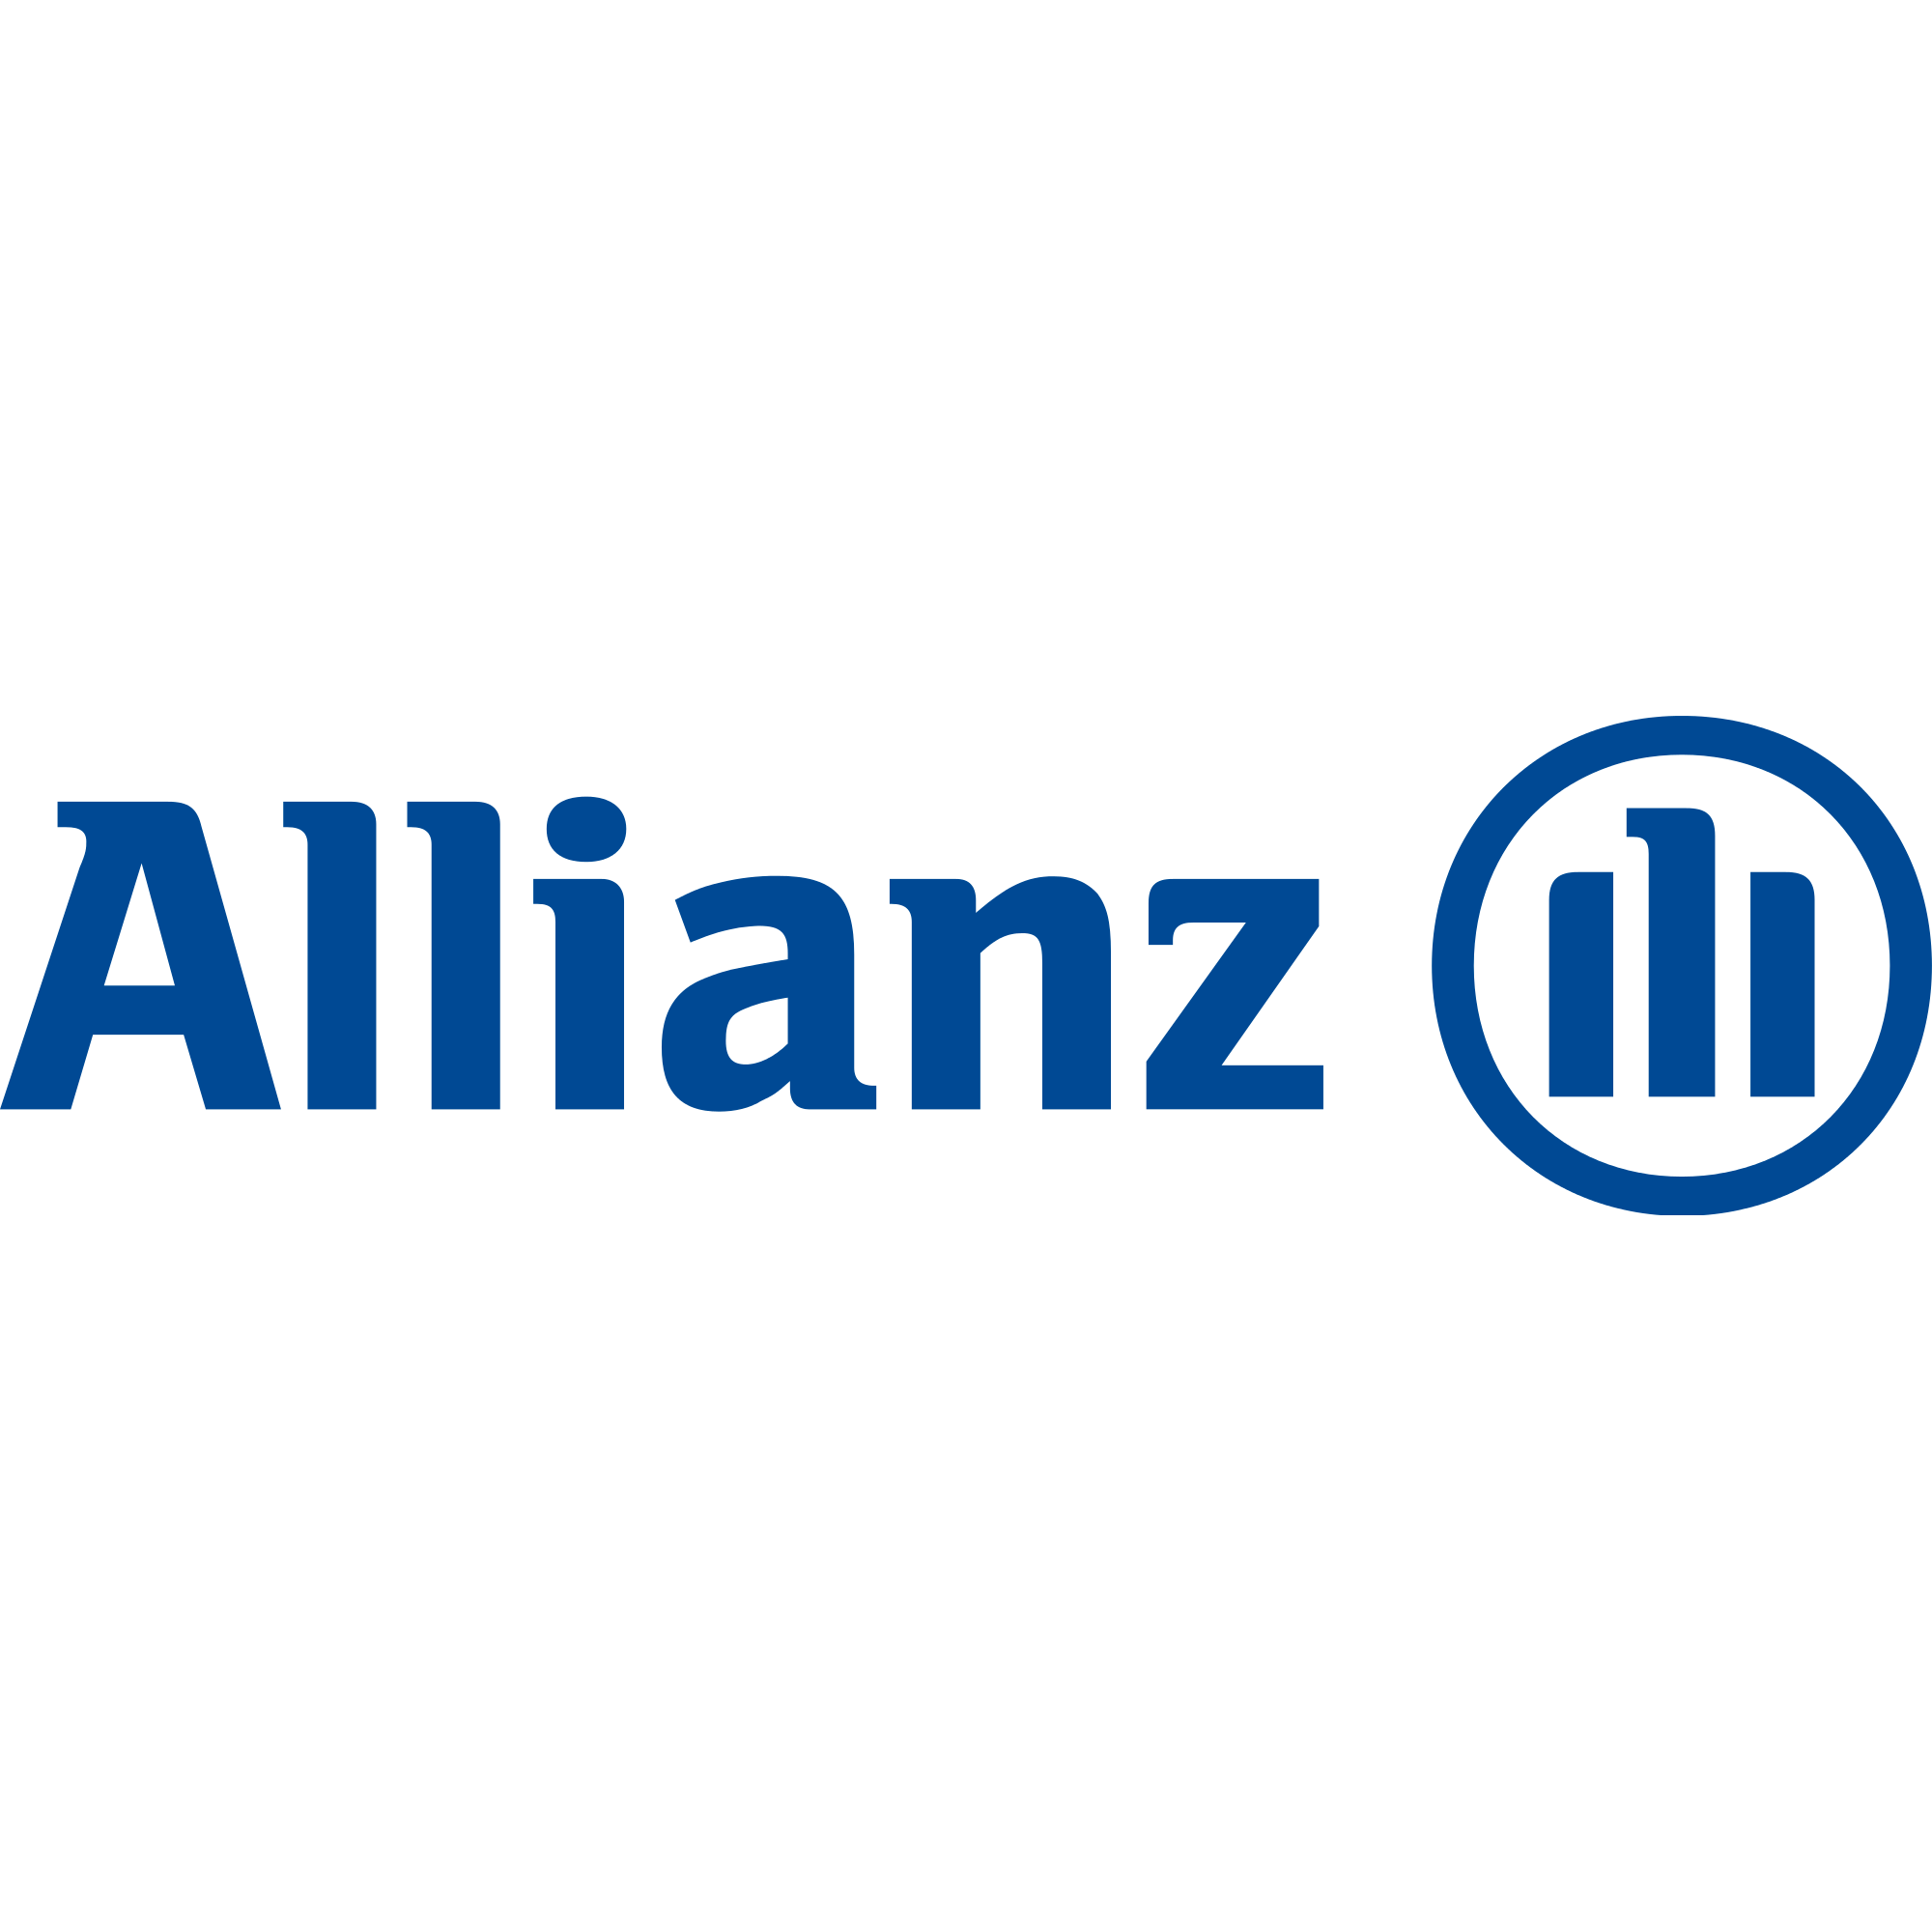 Bausparvertrag Allianz Allianz Bergheim Jürgen Dallmann In 50126 Bergheim